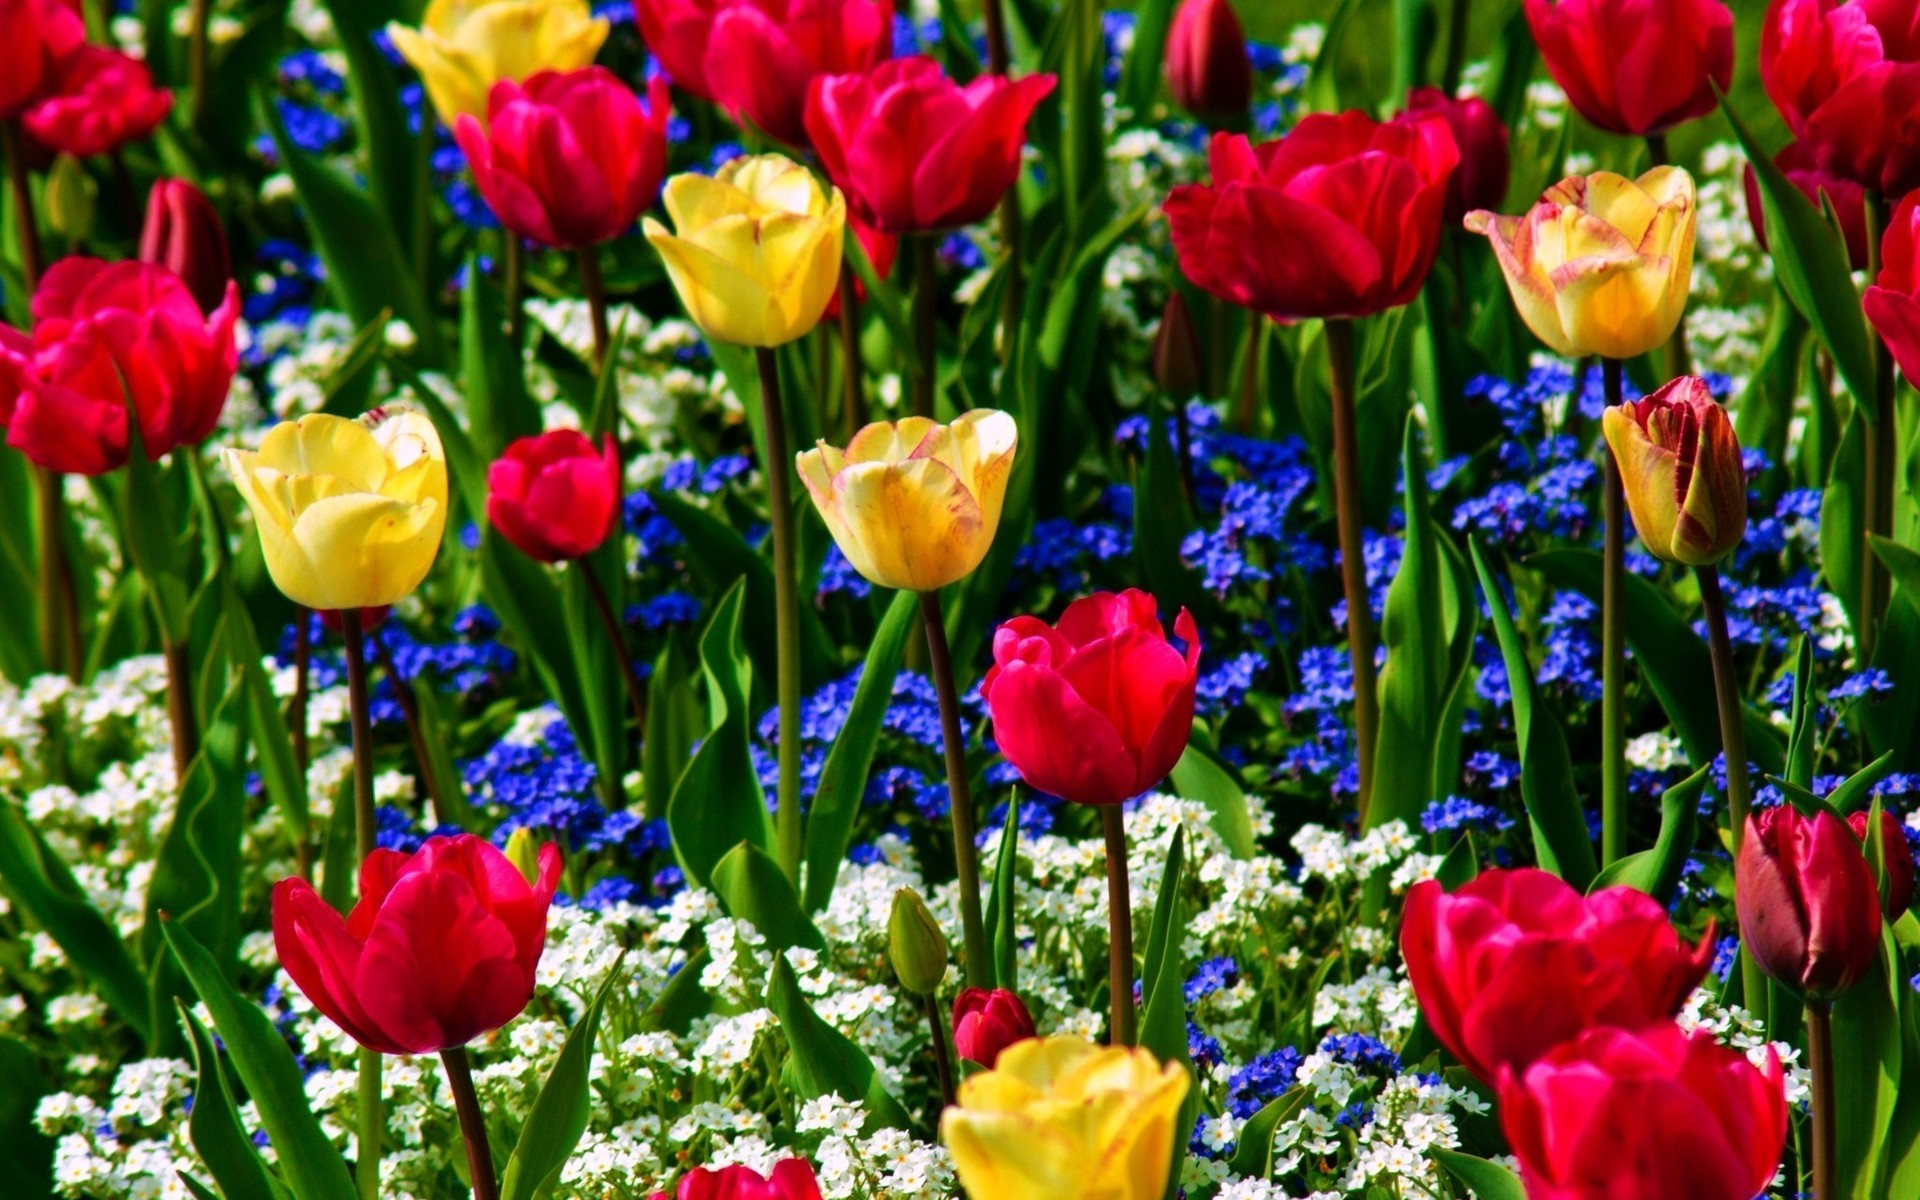 Colorful 1 colors 1 flower 1 flowers 1 nature 1 tulip 1 tulips 1